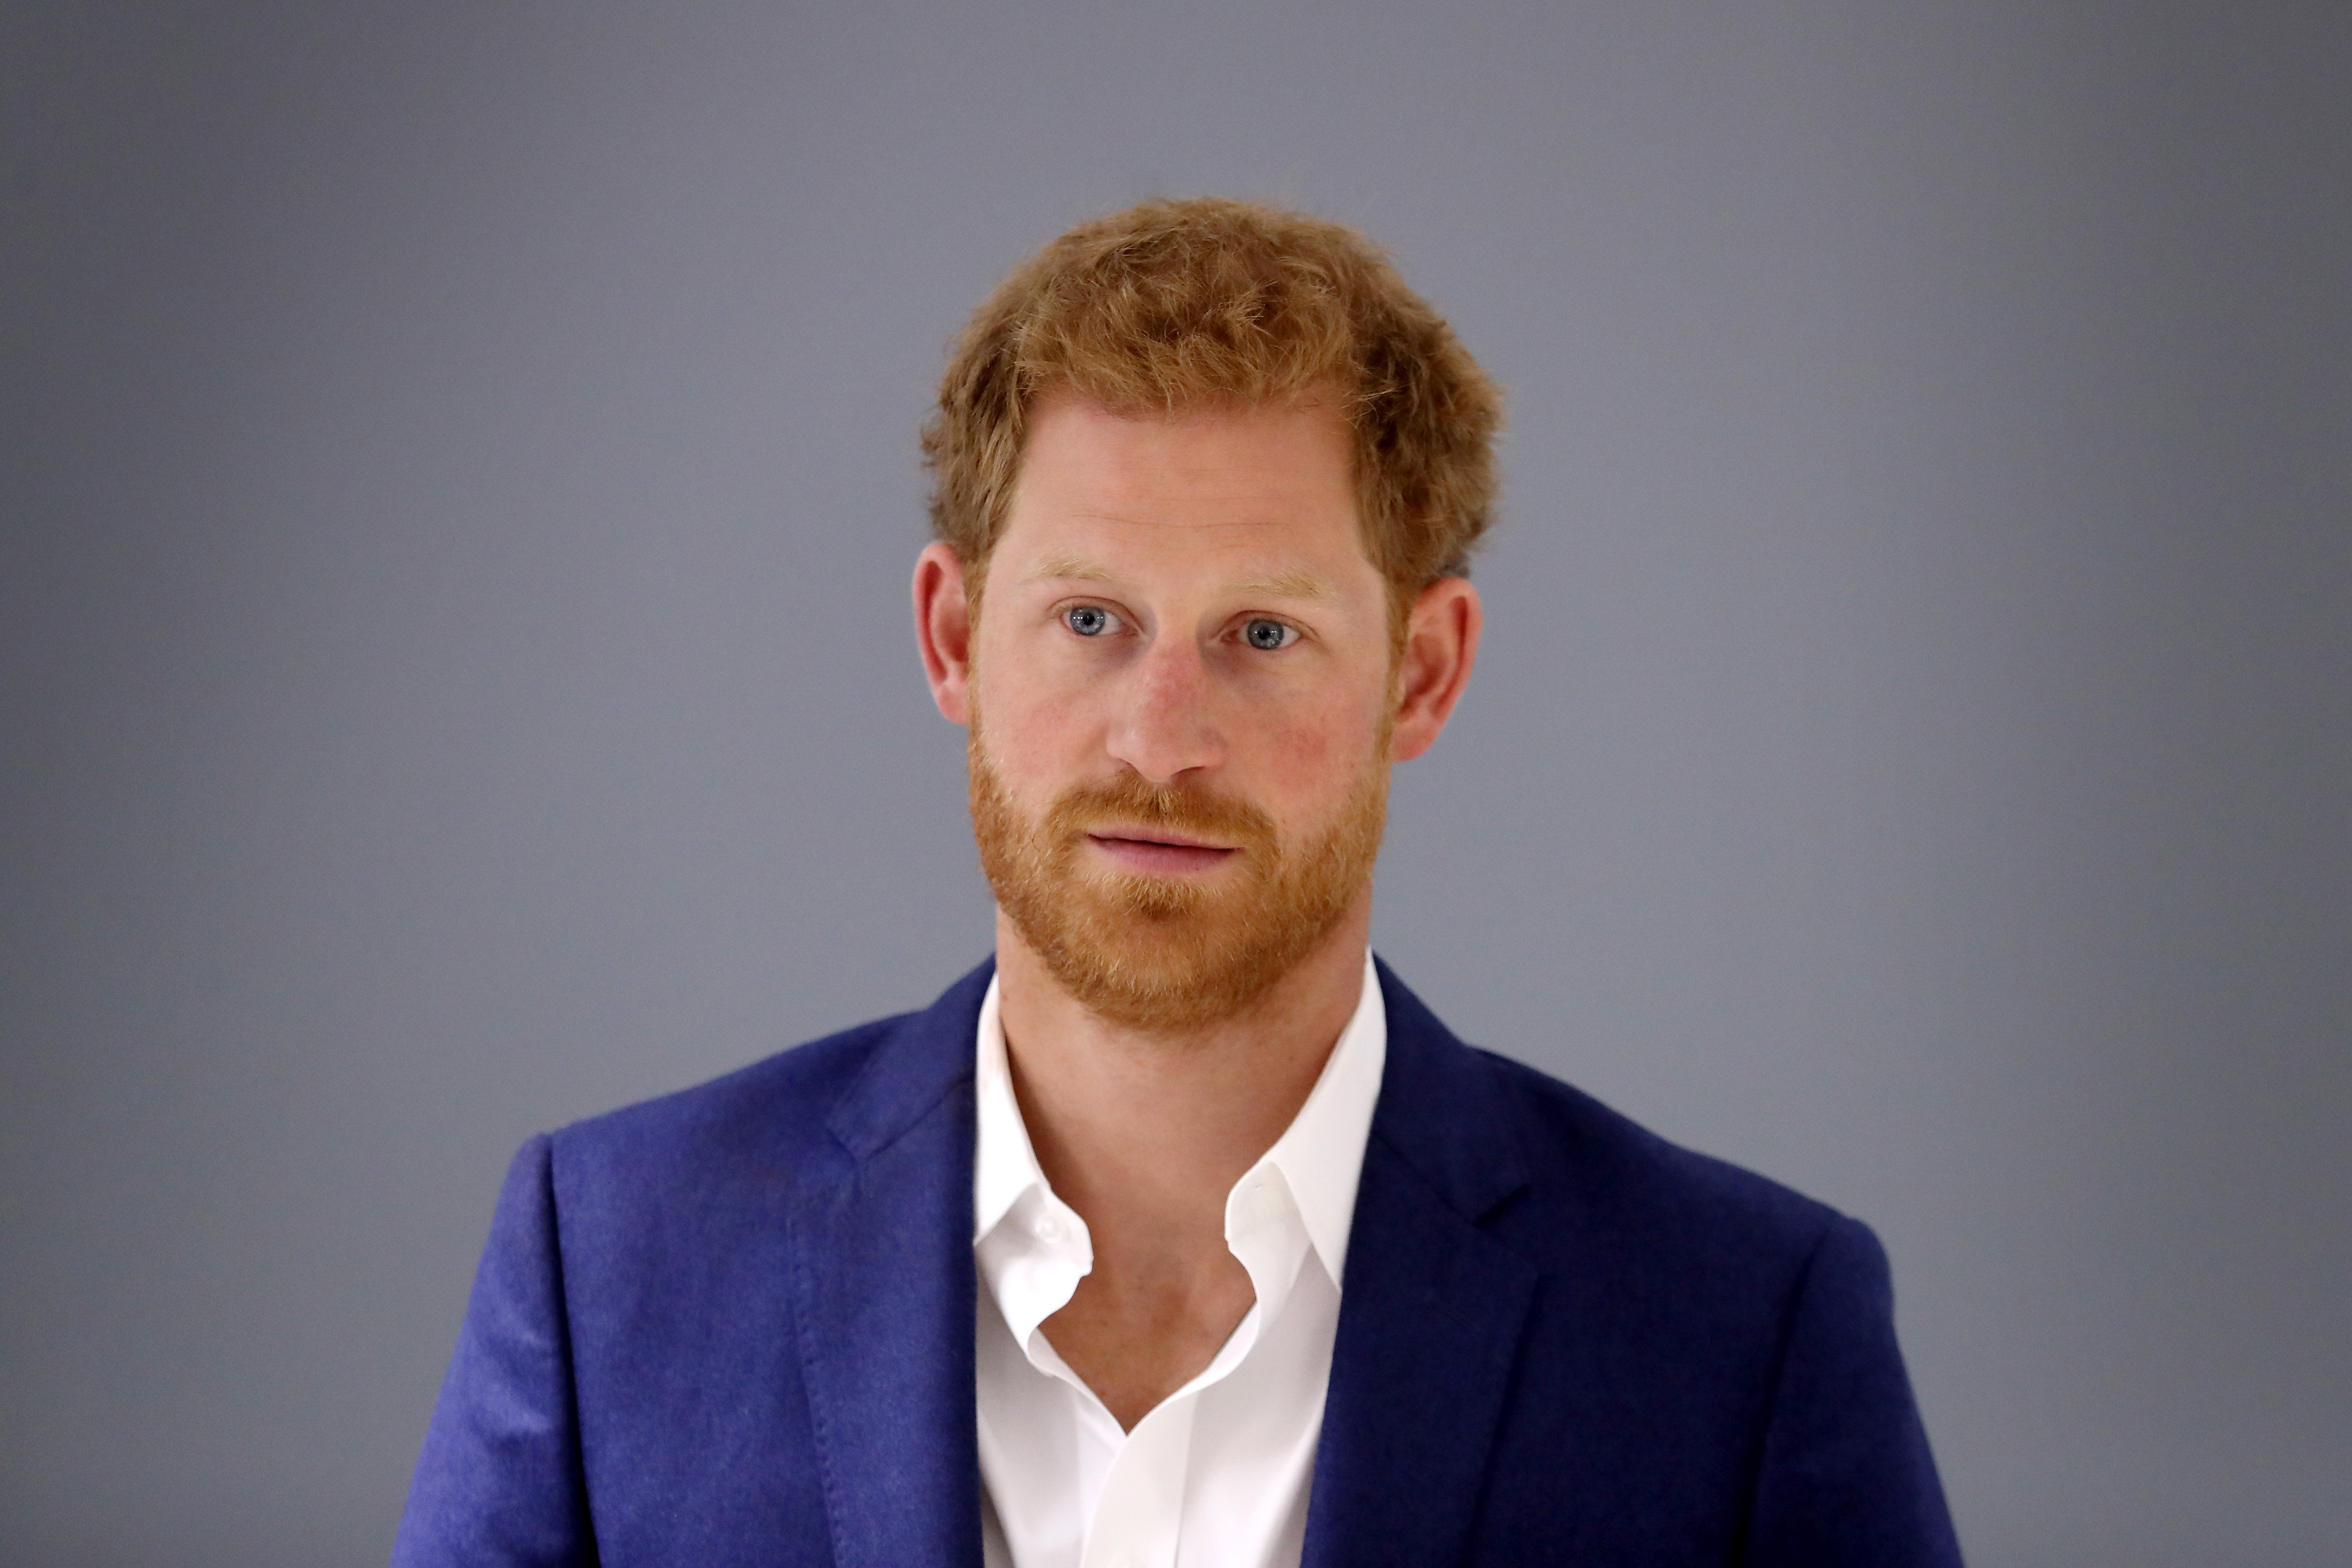 Prince Harry at the NHS Manchester Resilience Hub on September 4, 2017 in Manchester, England | Photo: Getty Images